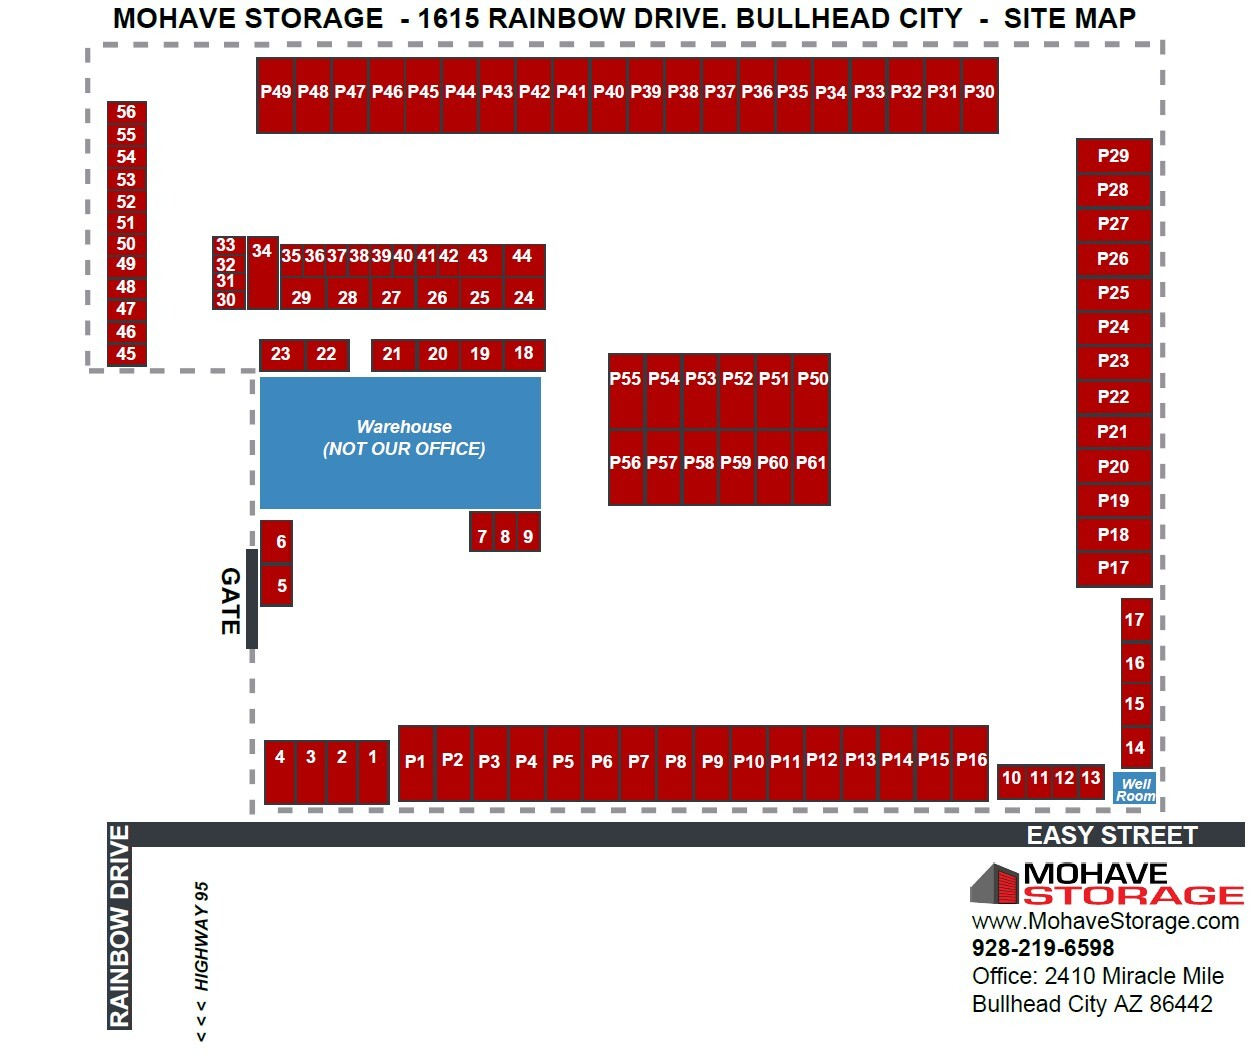 Site Map 1615 Rainbow Dr Bullhead Site Map Prospective Tenants Mohave Storage updated 8-26-21